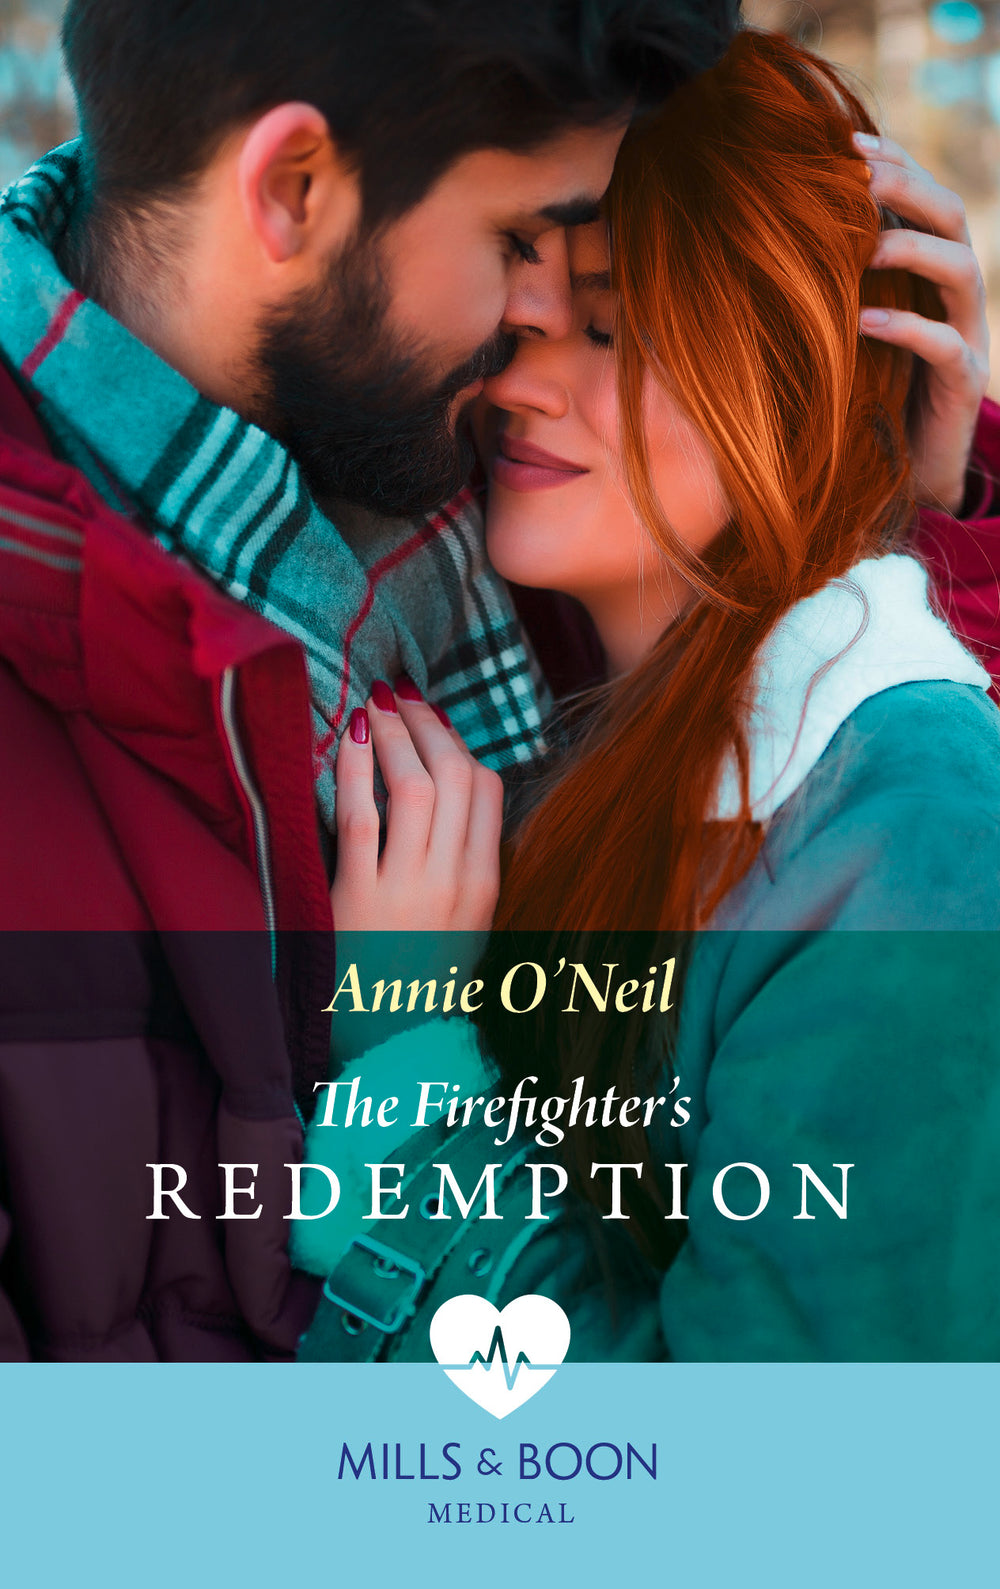 The Firefighter's Redemption - Chapter 4